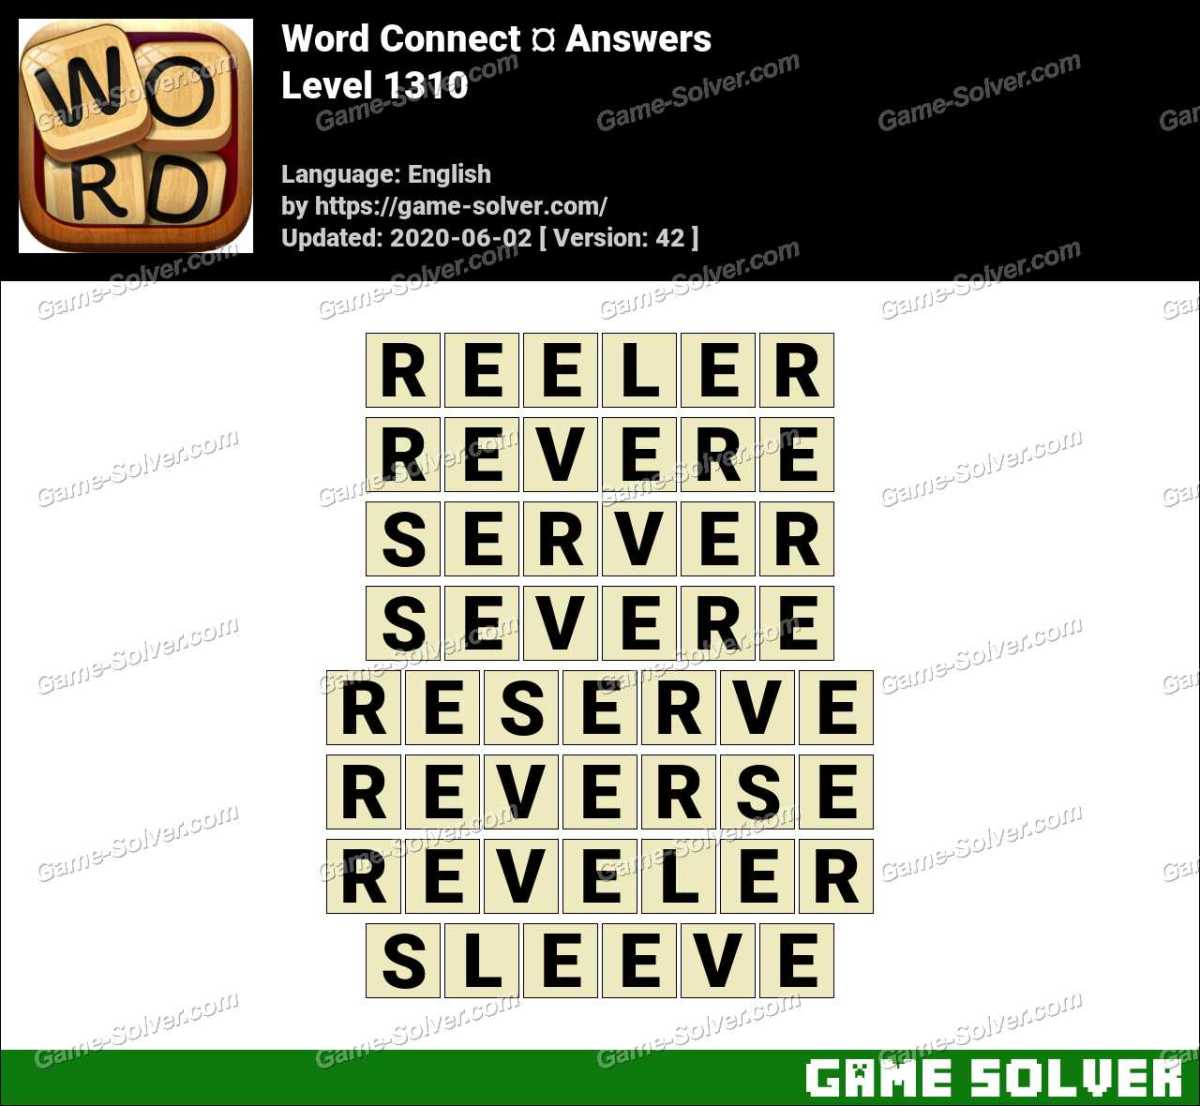 Word Connect Level 1310 Answers